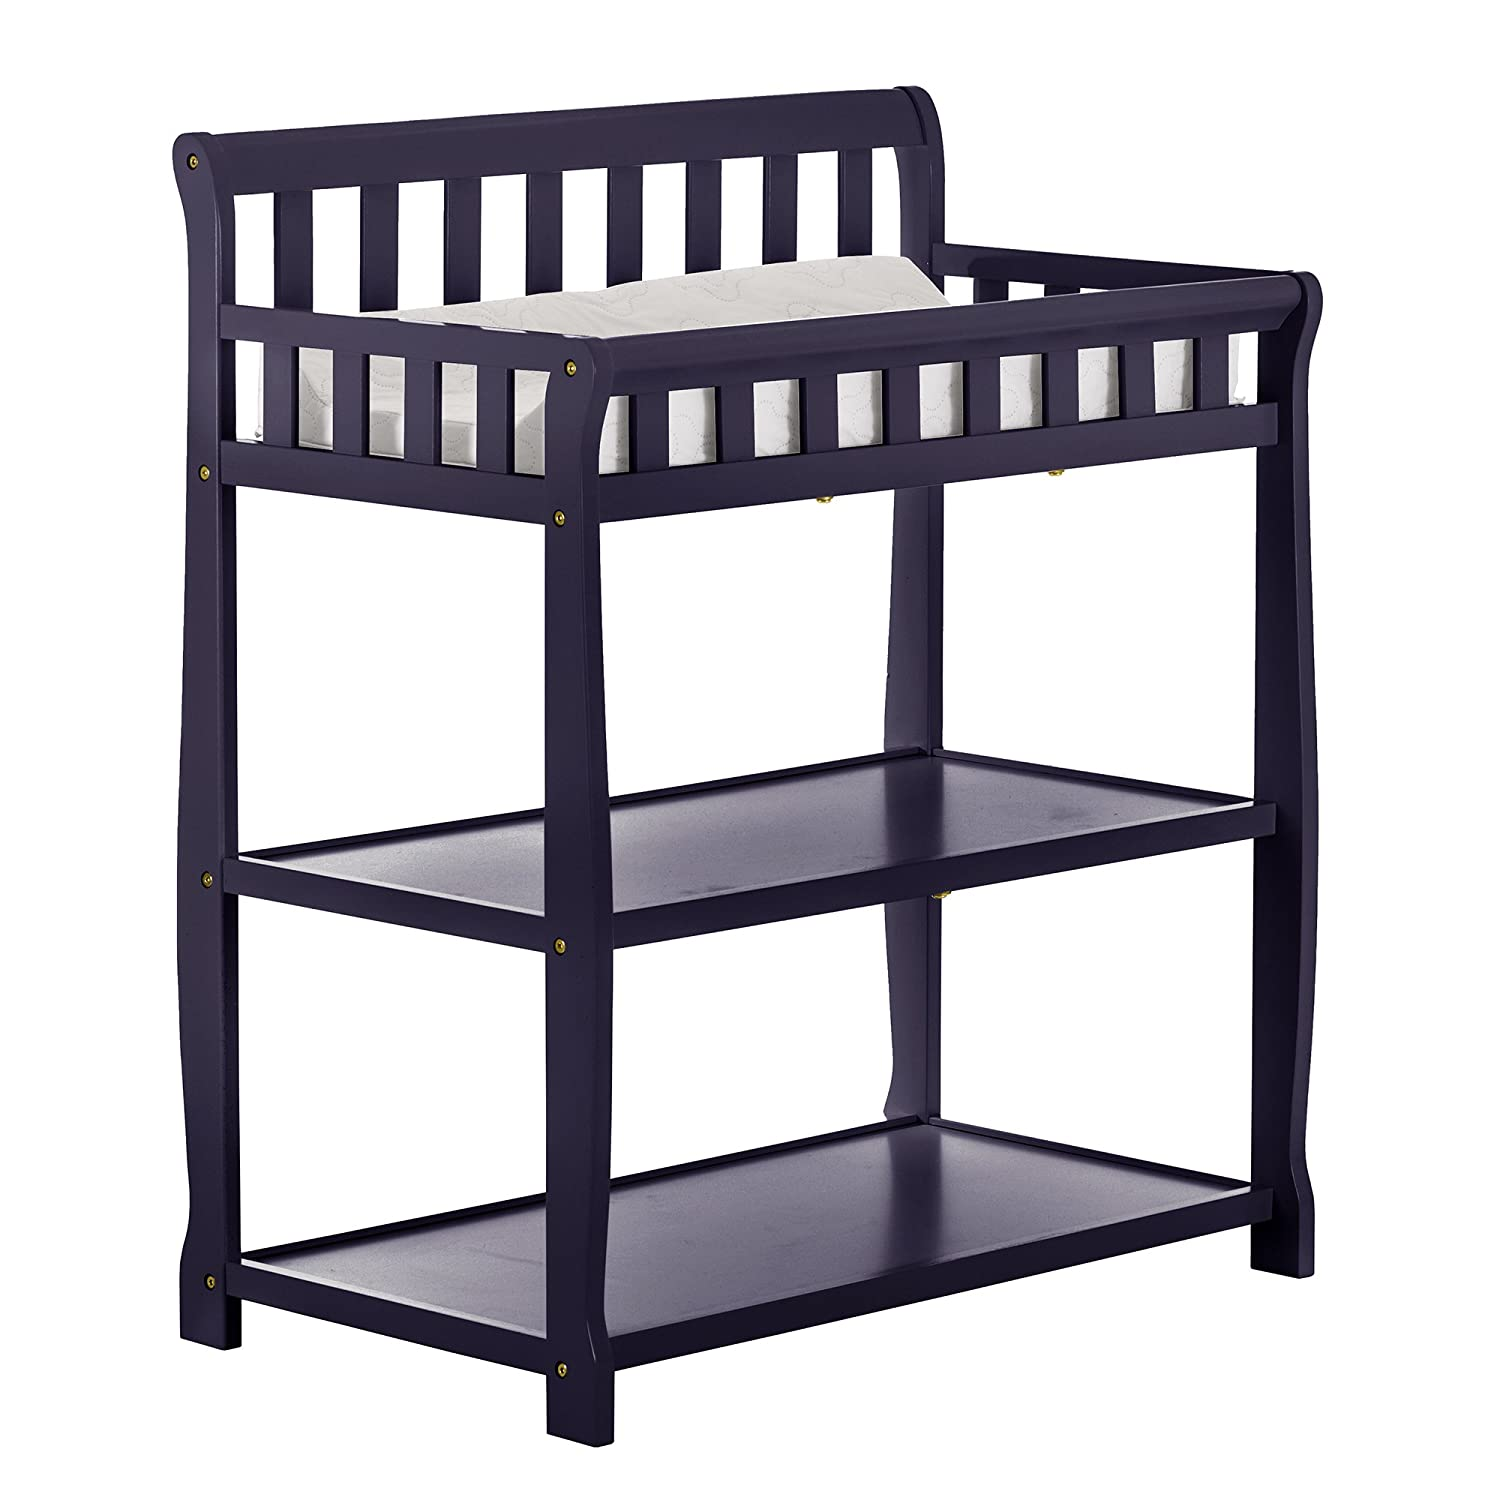 Dream On Me Ashton Changing Table, Steel Grey 604-SGY